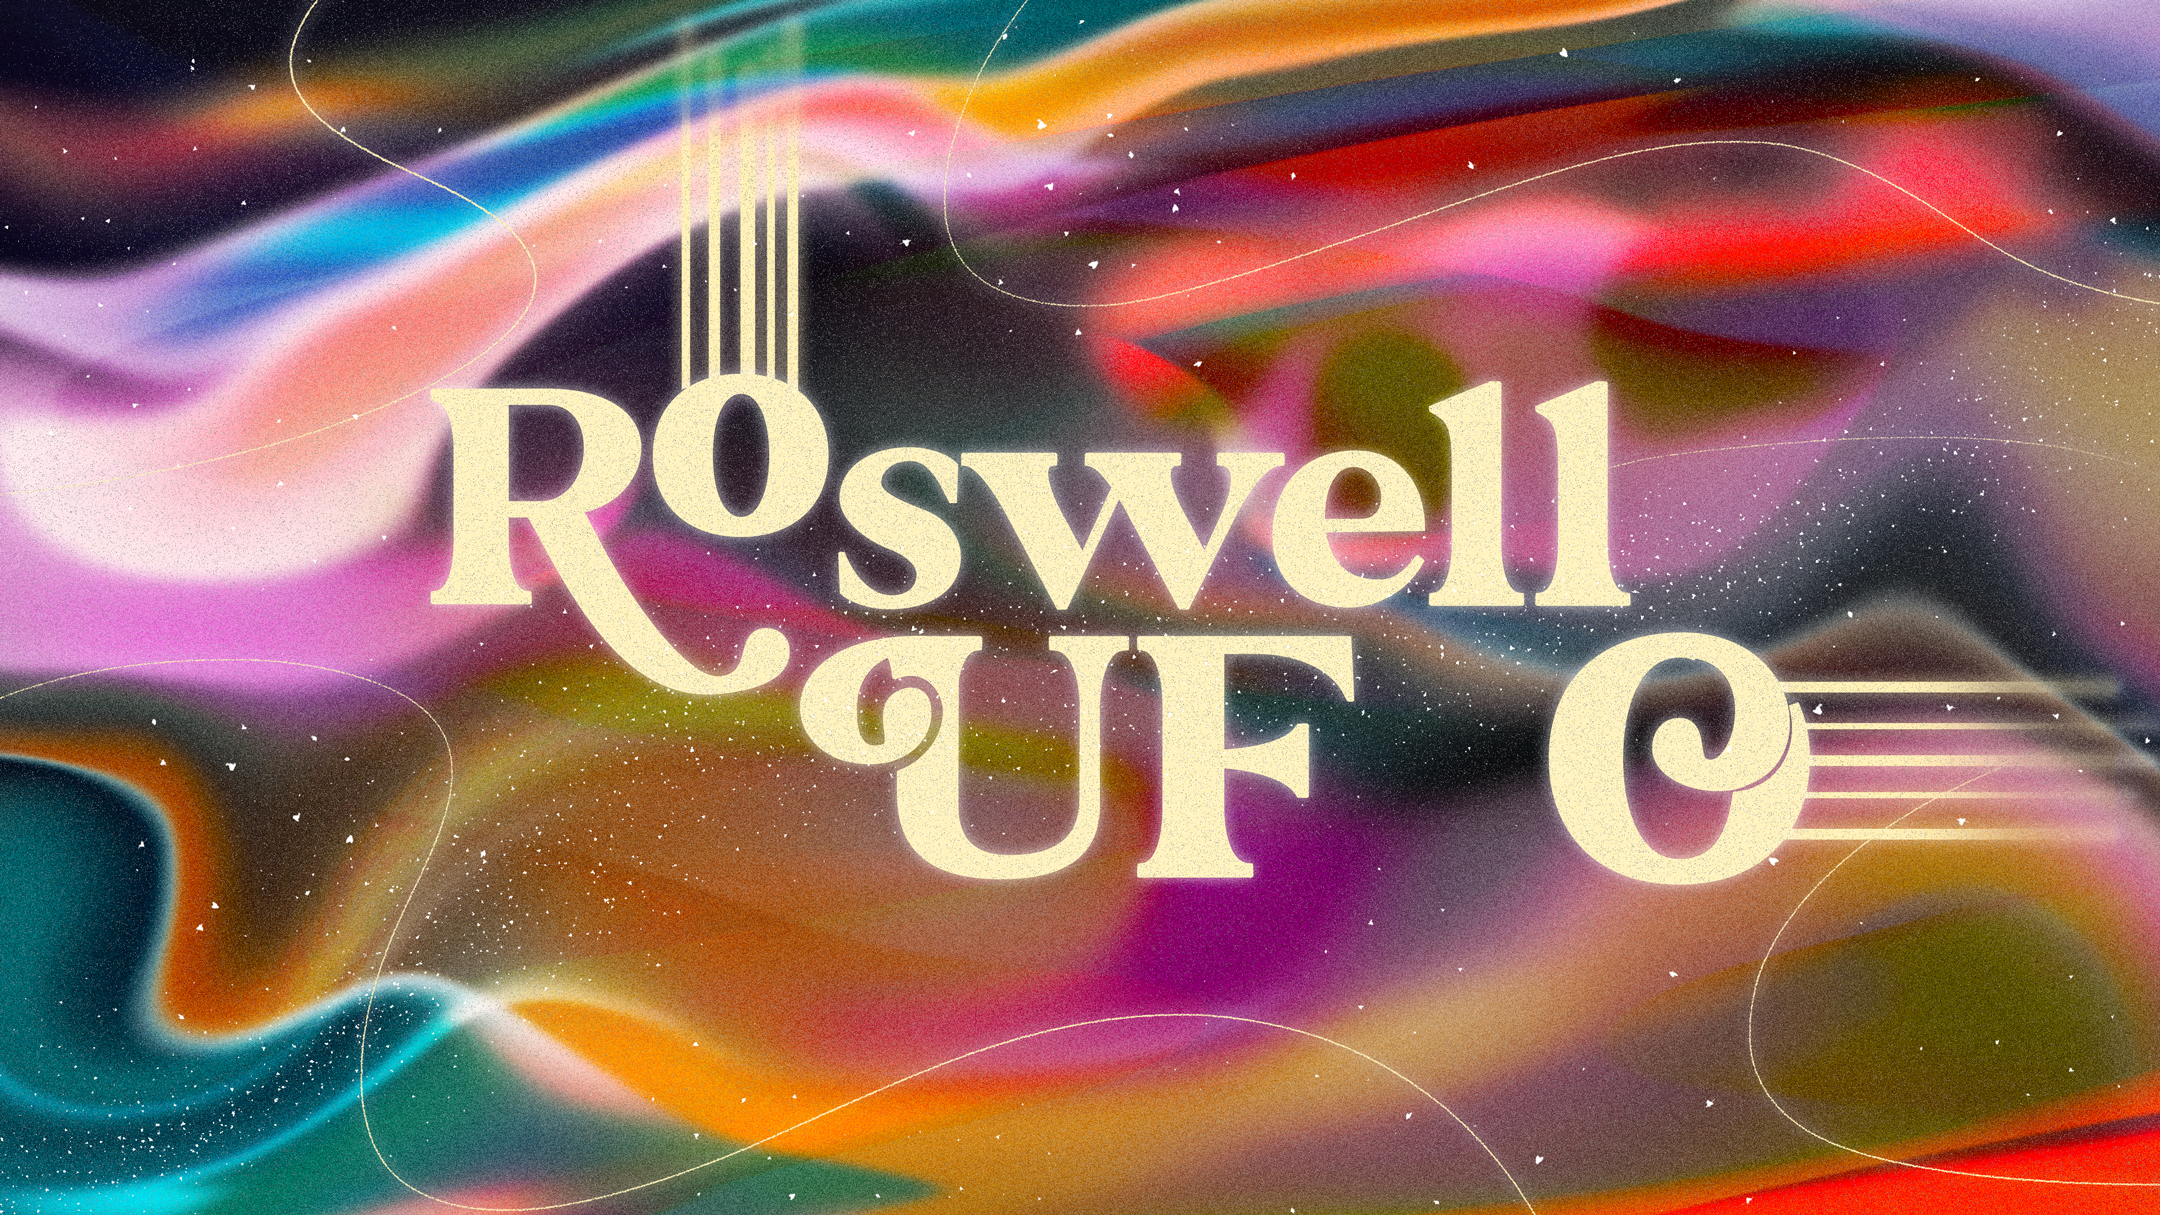 Roswell_UFO1